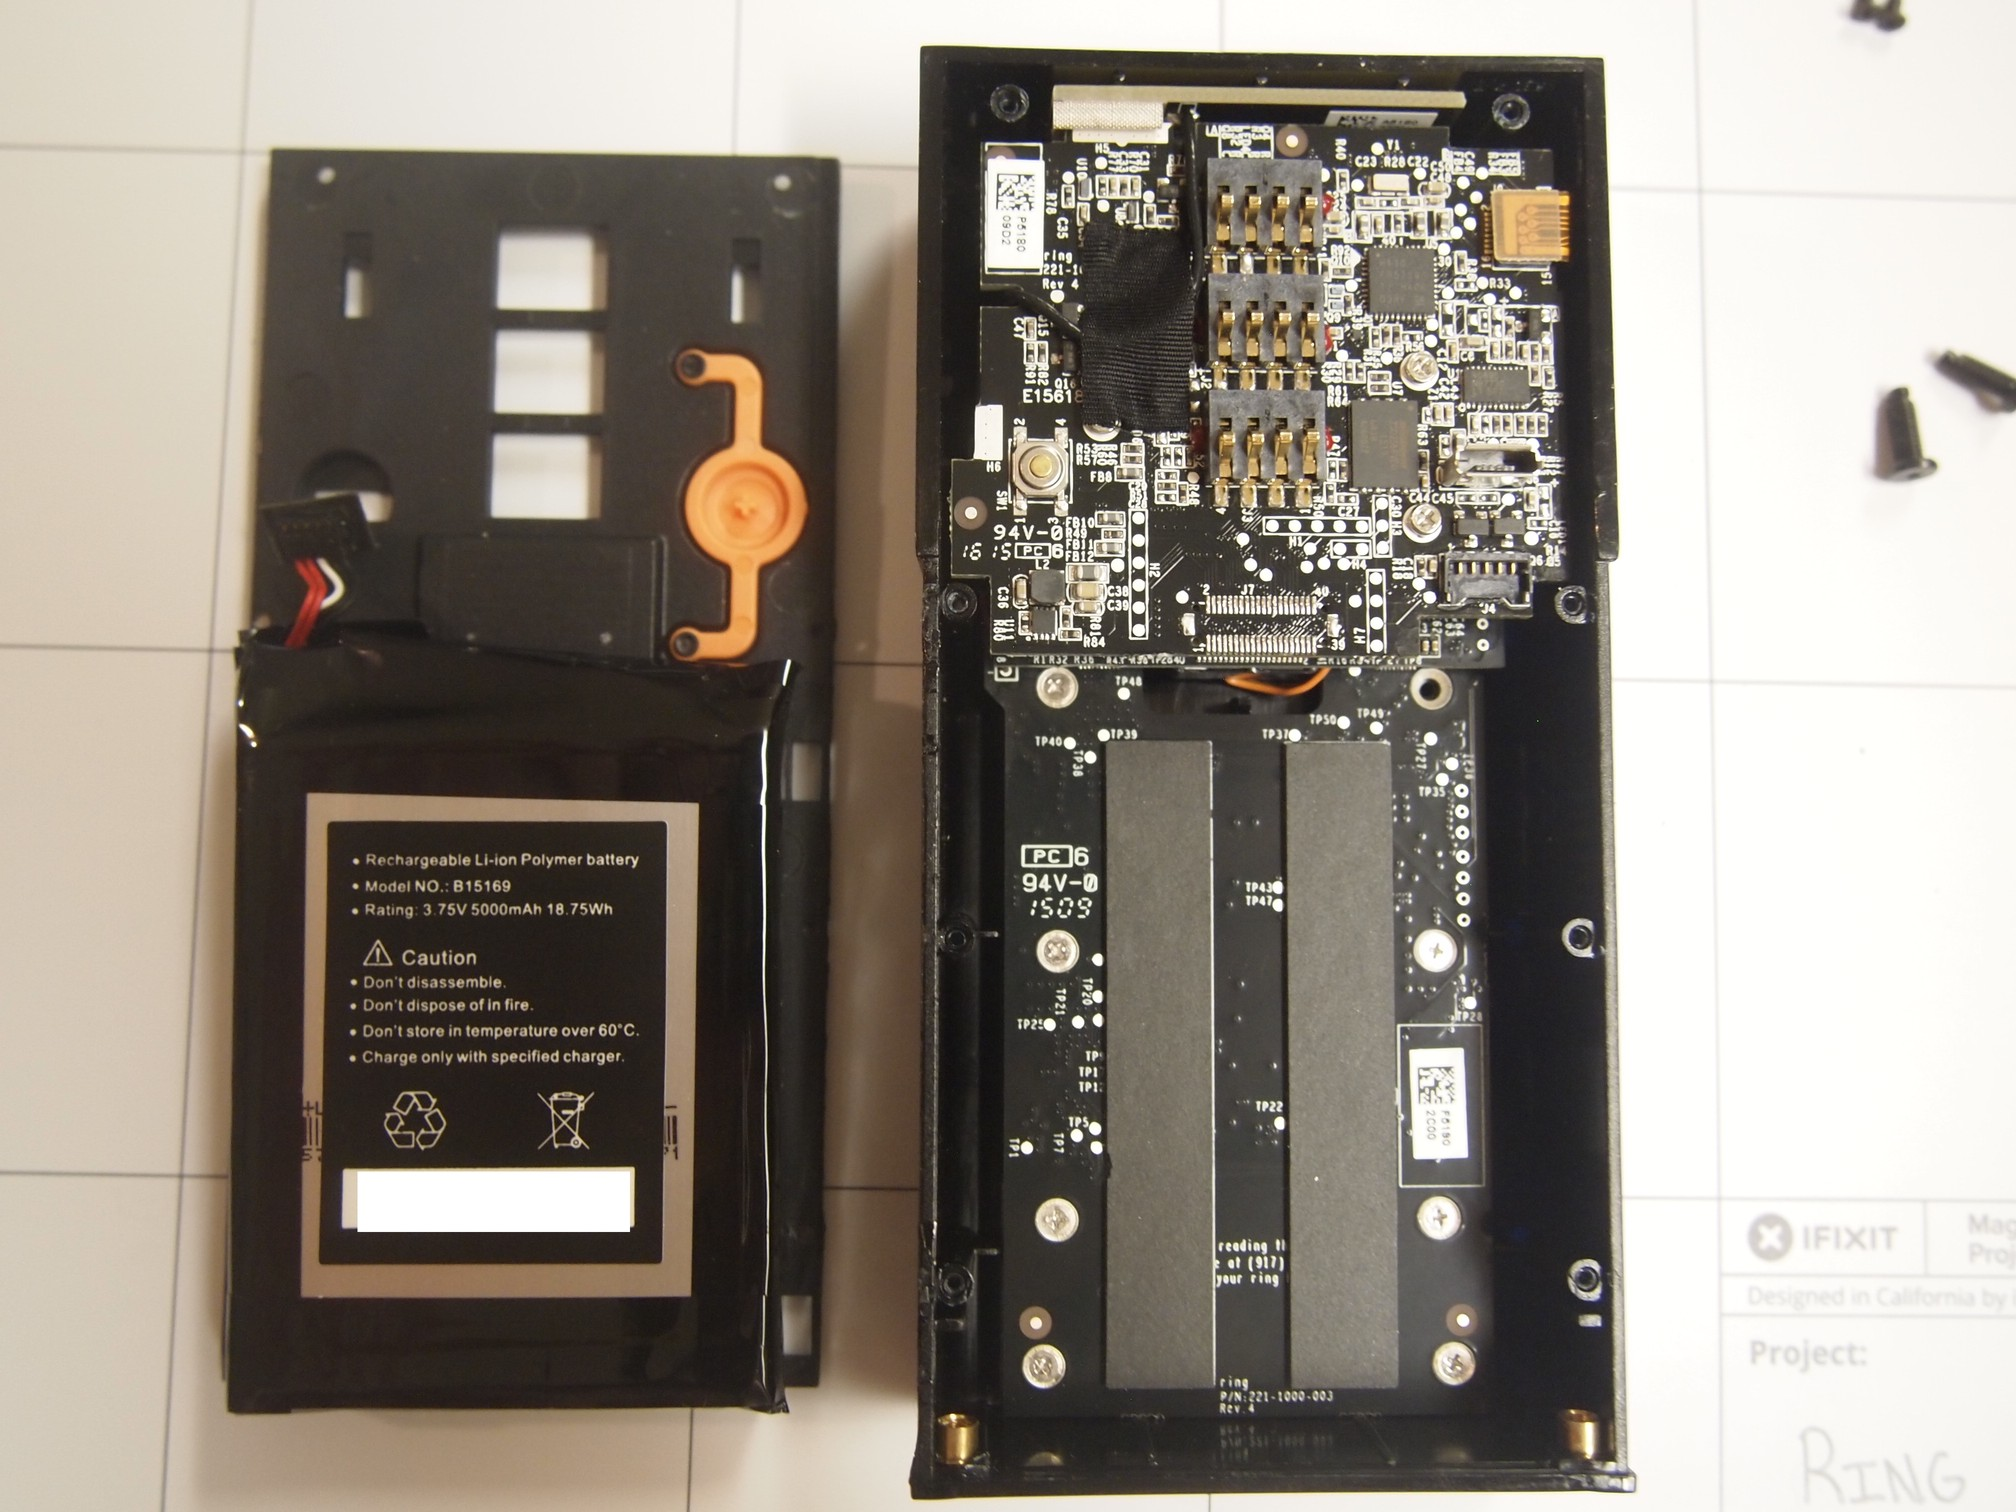 Ring-Doorbell-Teardown-8.jpeg